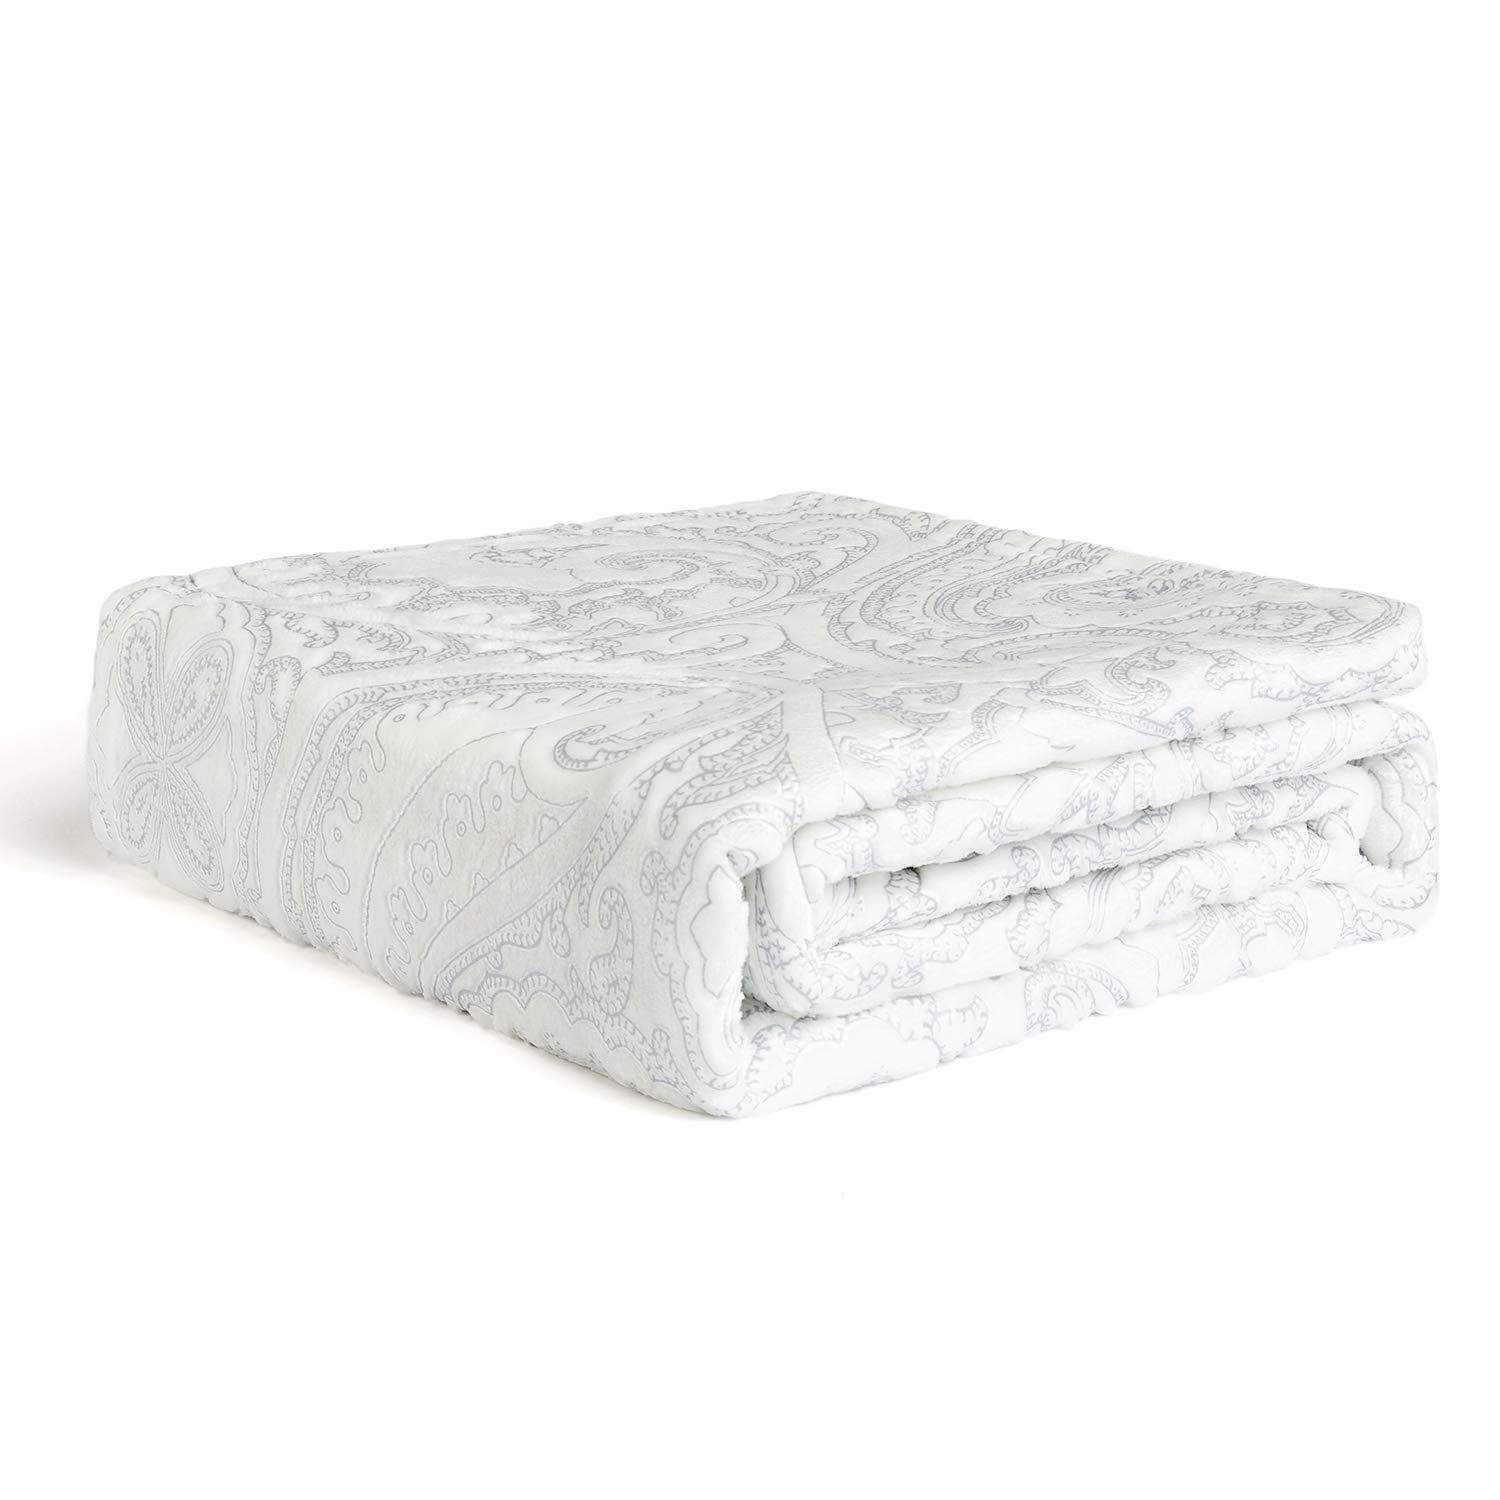 HT&PJ Vintage Carving Print Luxury Soft Warm Lazy Cozy Blanket for Bed Couch White